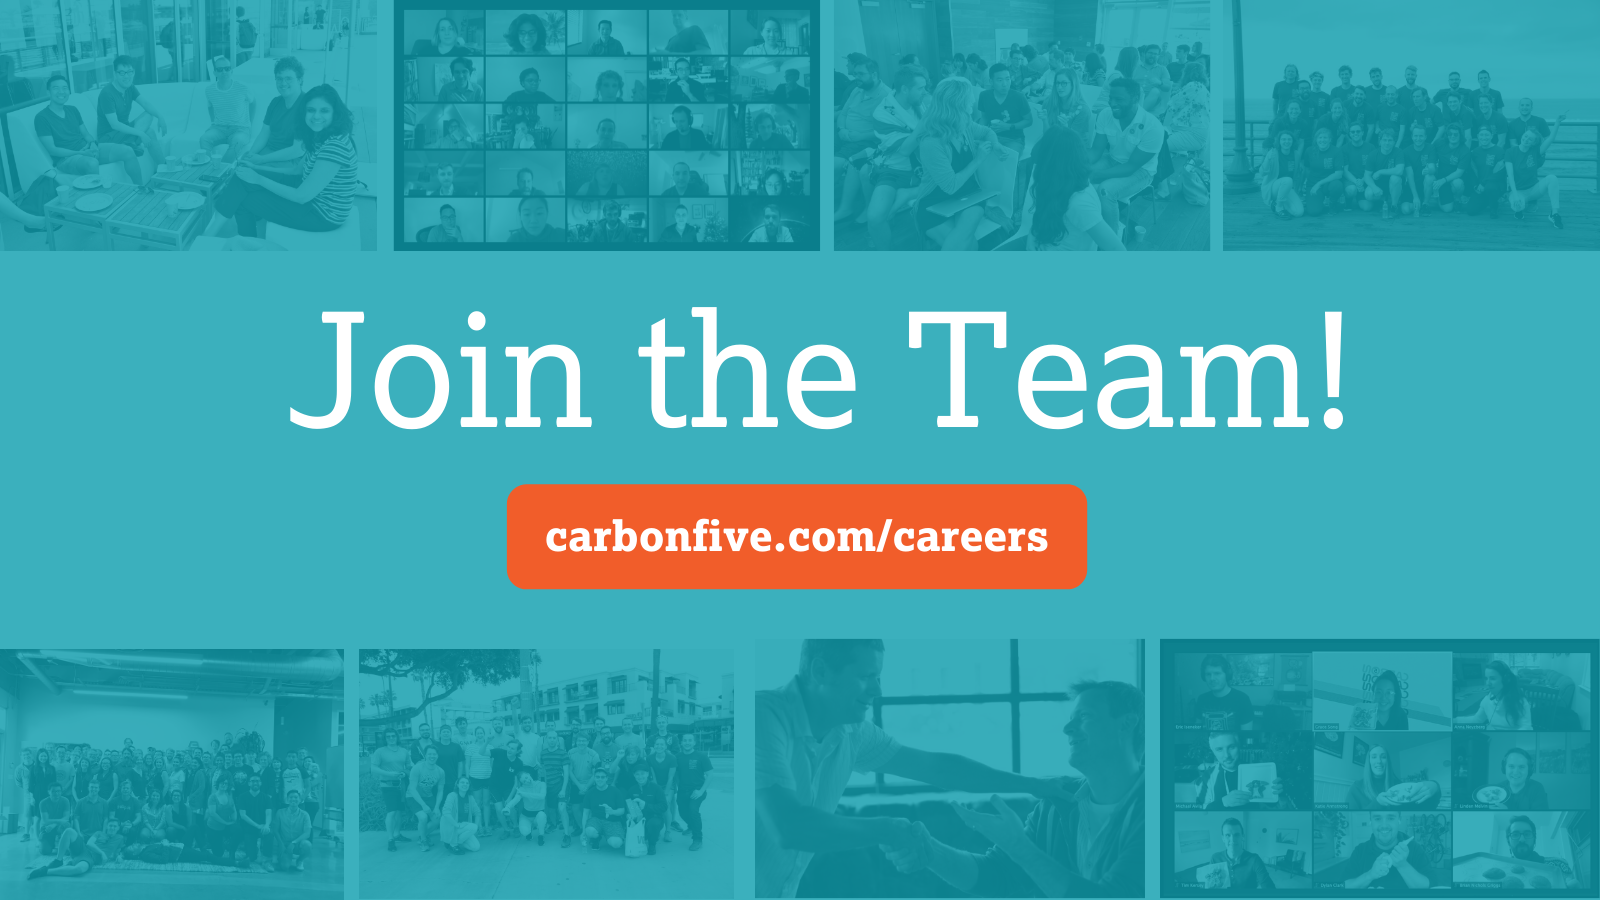 Join the Carbon Five Team collage of group photos with link to carbonfive.com/careers